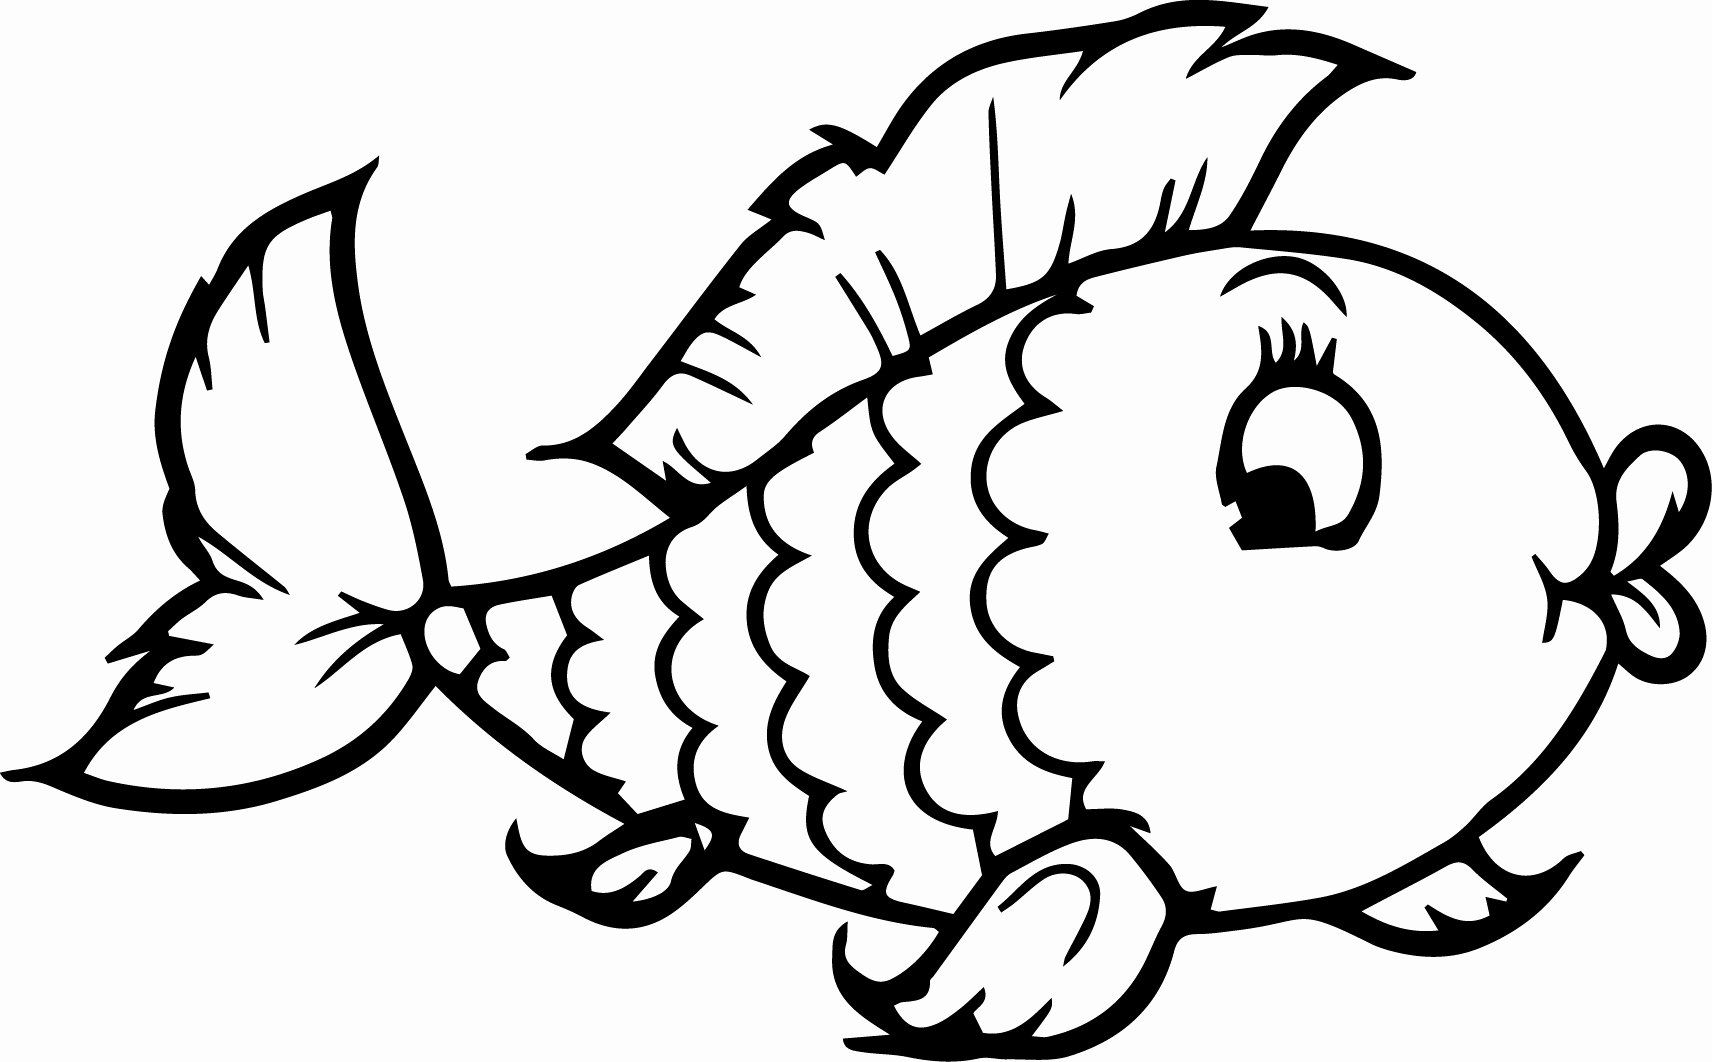 Animals Coloring Book Pdf Free Download Awesome Library Of Big Fish Picture Royalty Free Librar In 2020 Fish Coloring Page Cartoon Coloring Pages Animal Coloring Pages